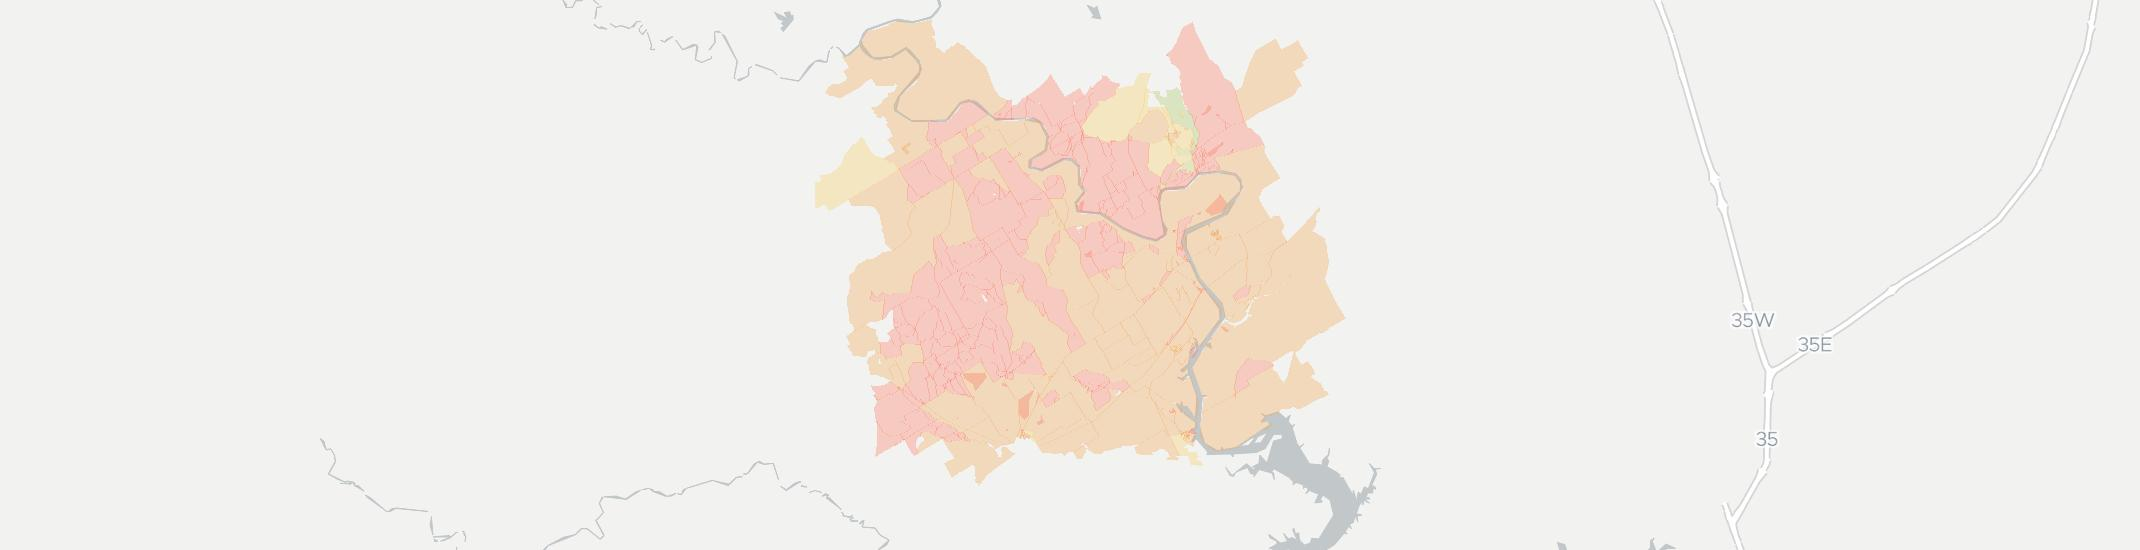 Kopperl Internet Competition Map. Click for interactive map.